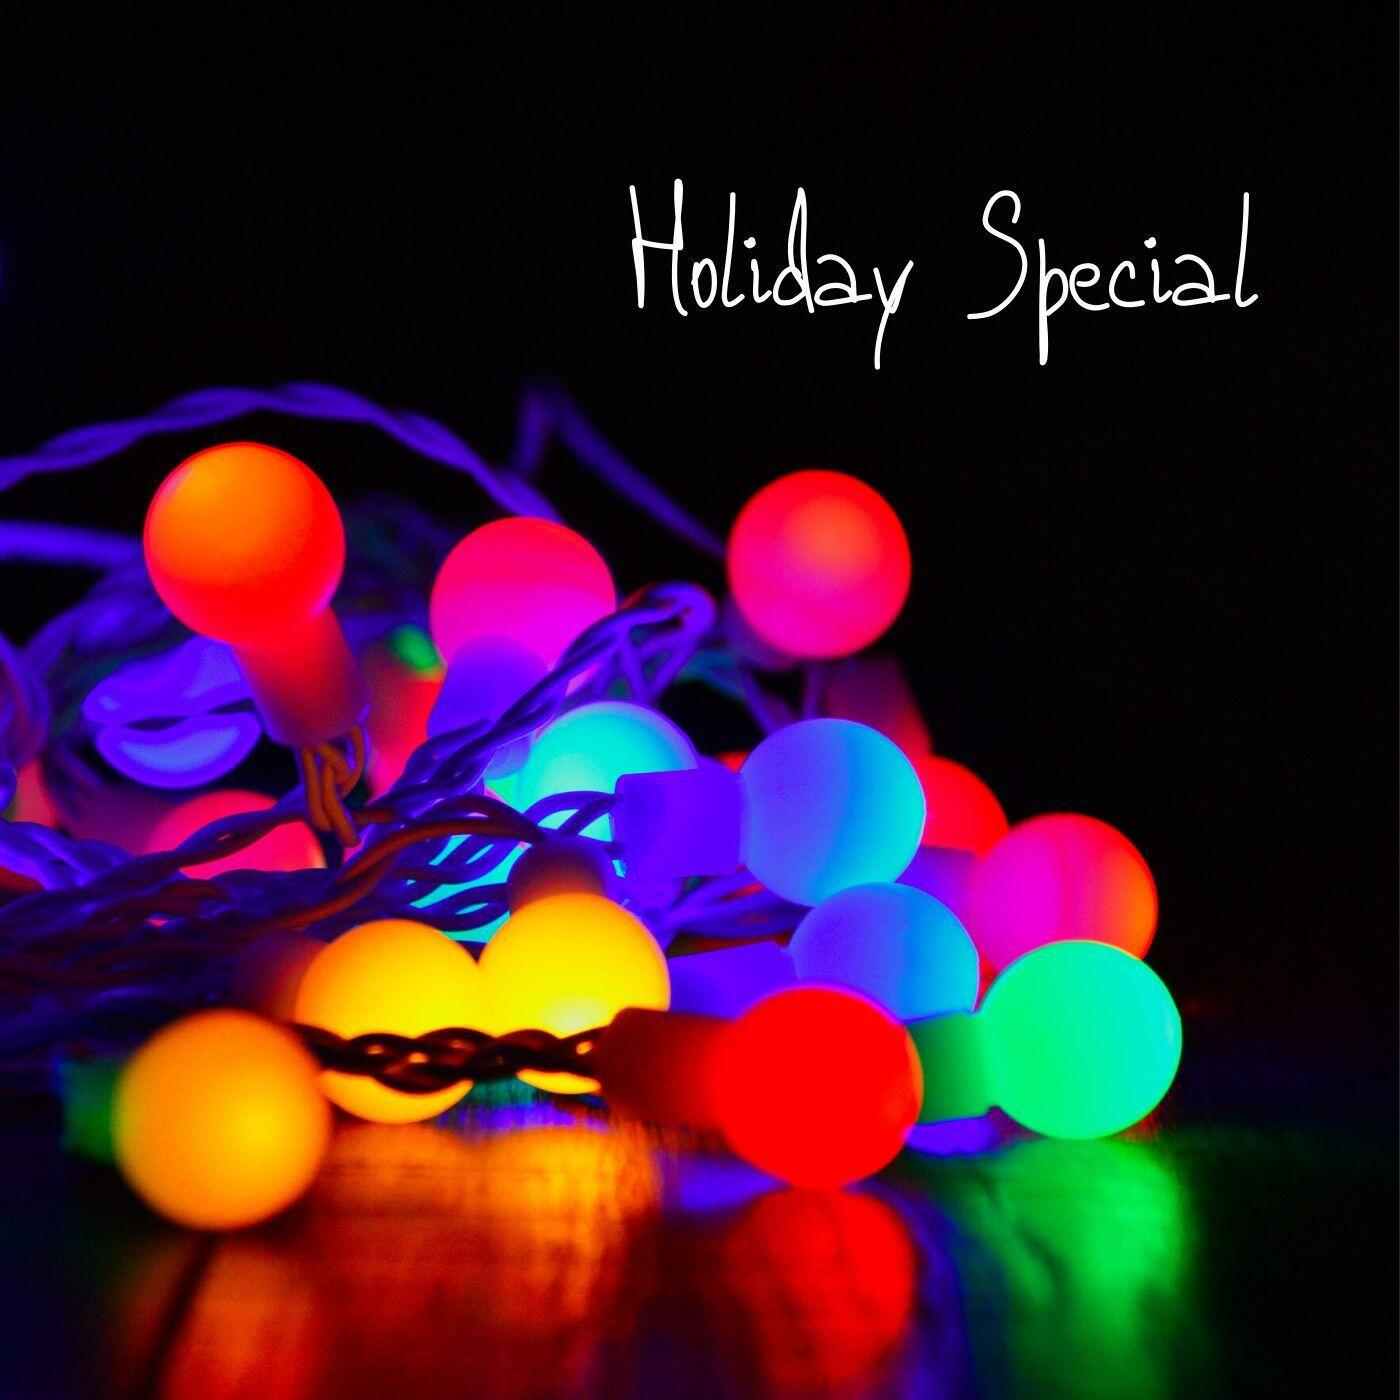 87: Holiday Special